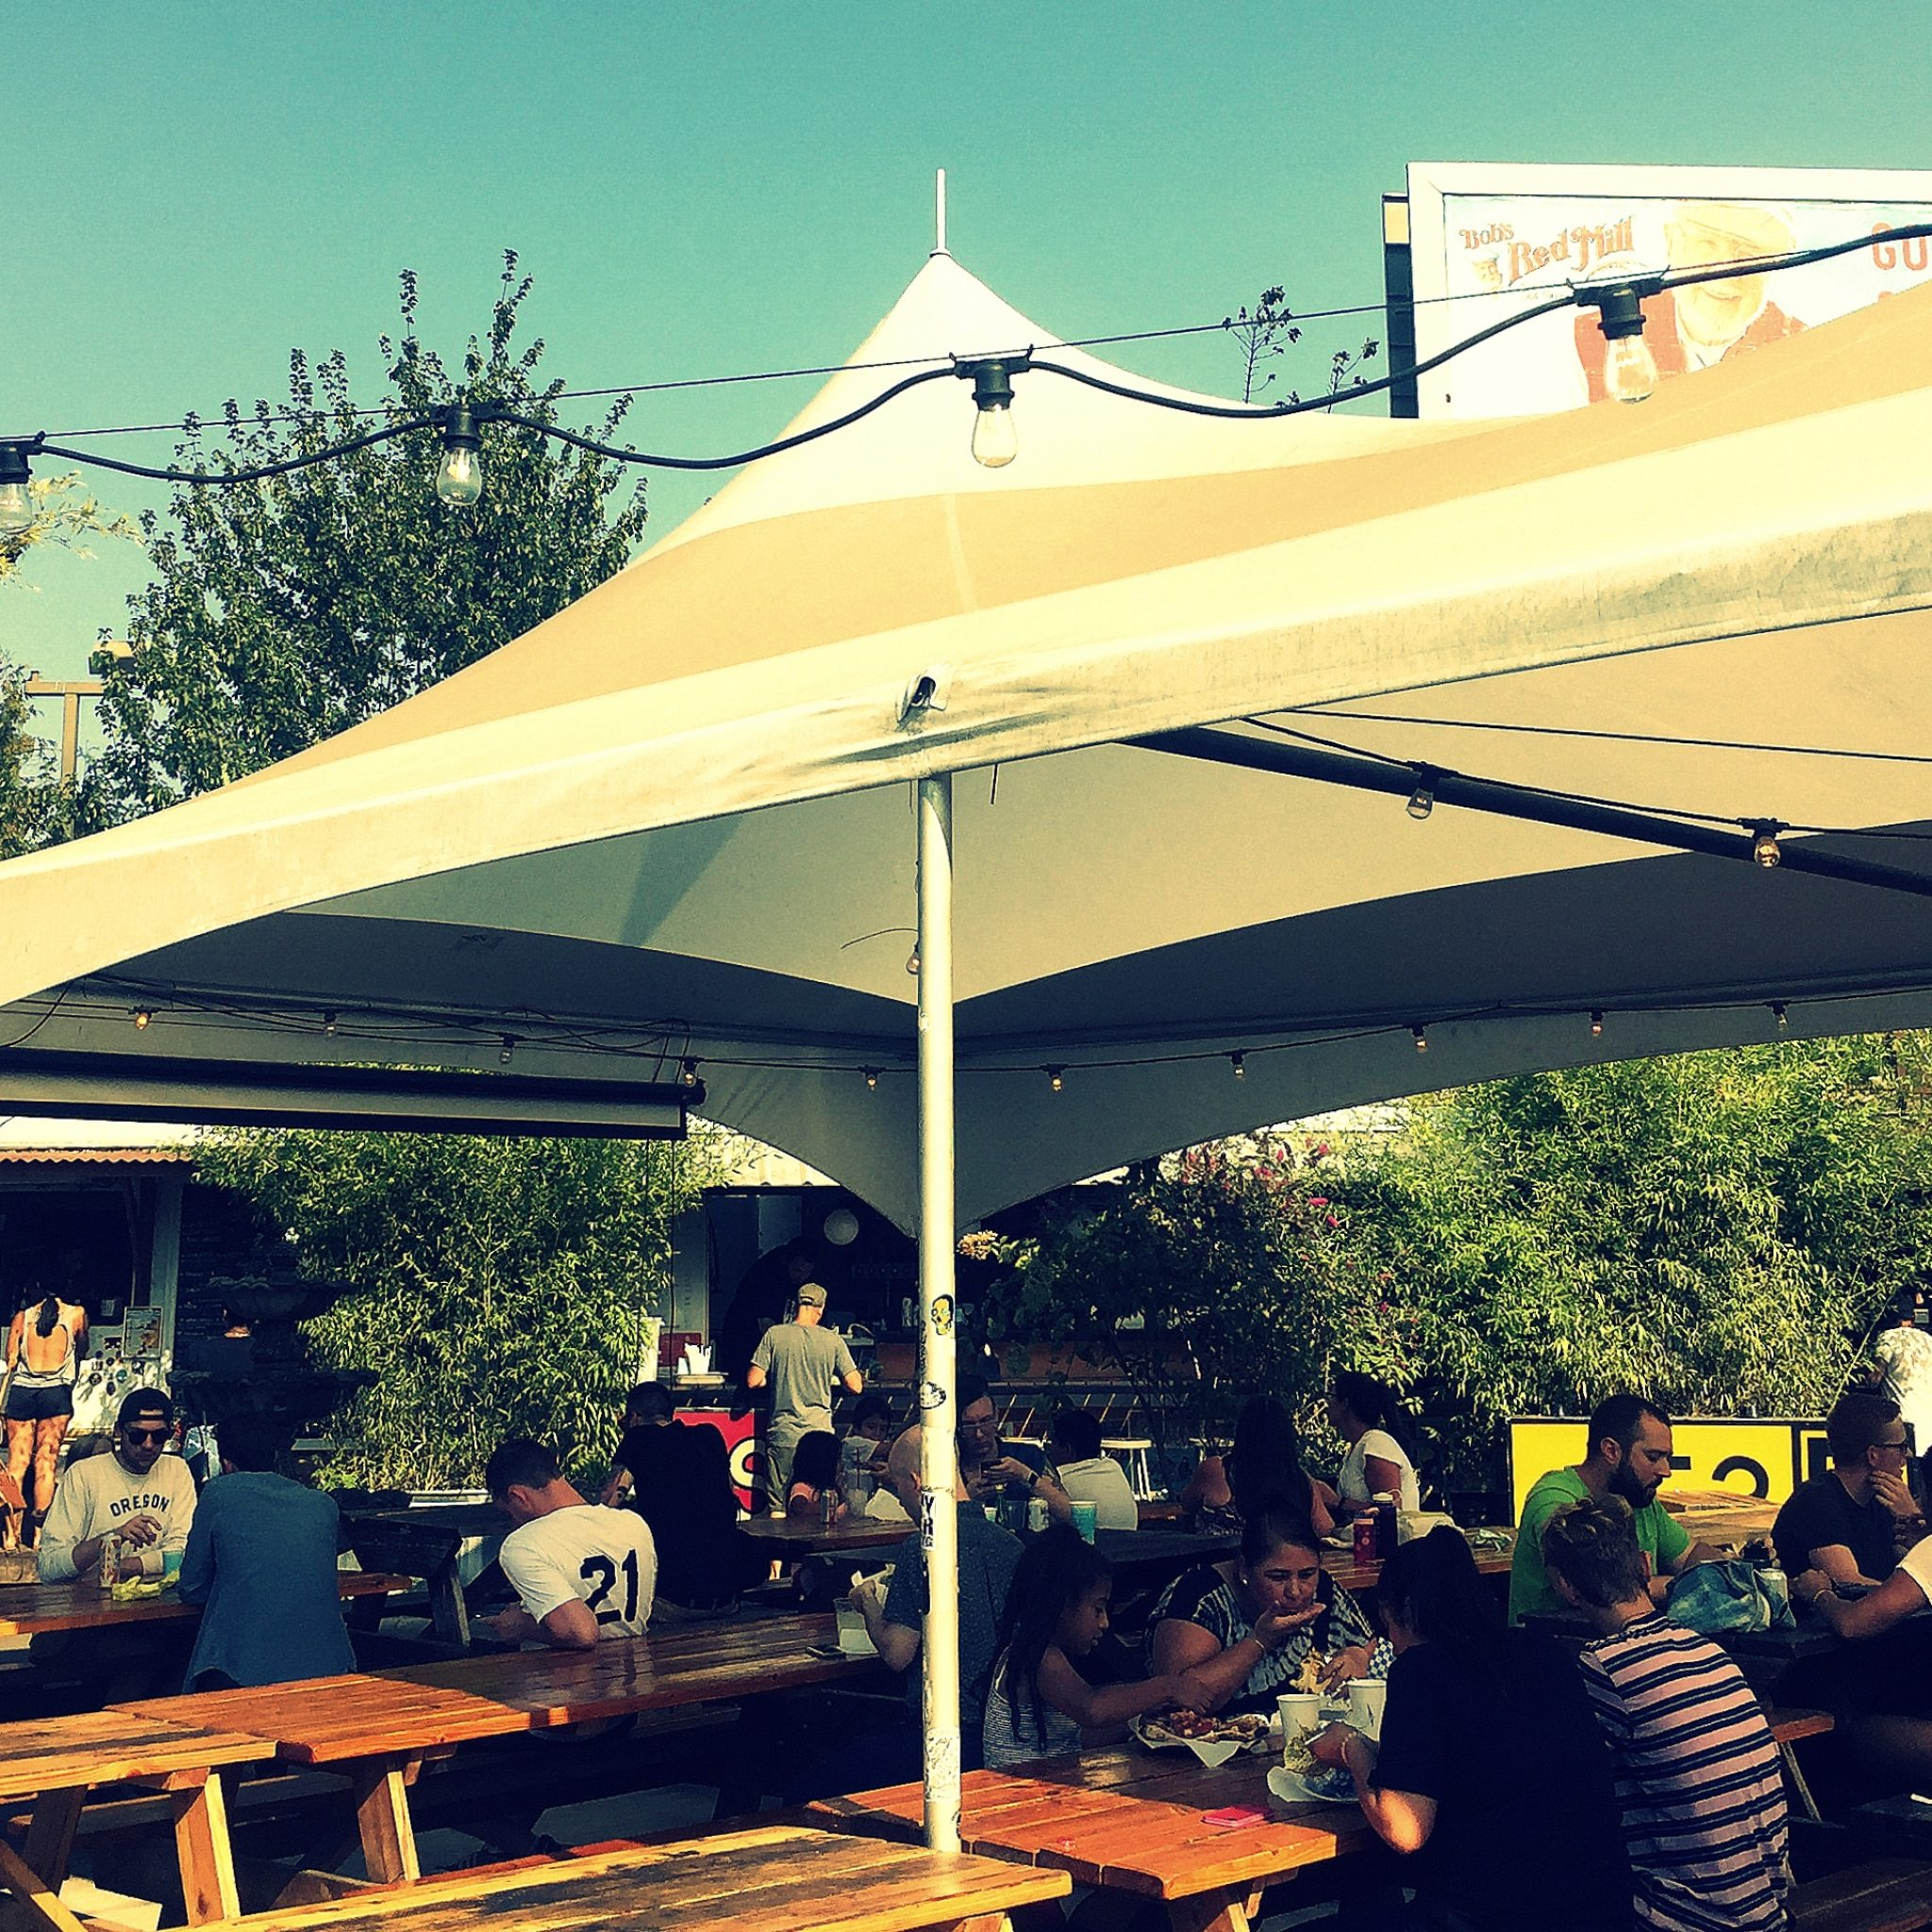 Food carts are a fantastic, uniquely Portland take on street food and collective joy of eating.